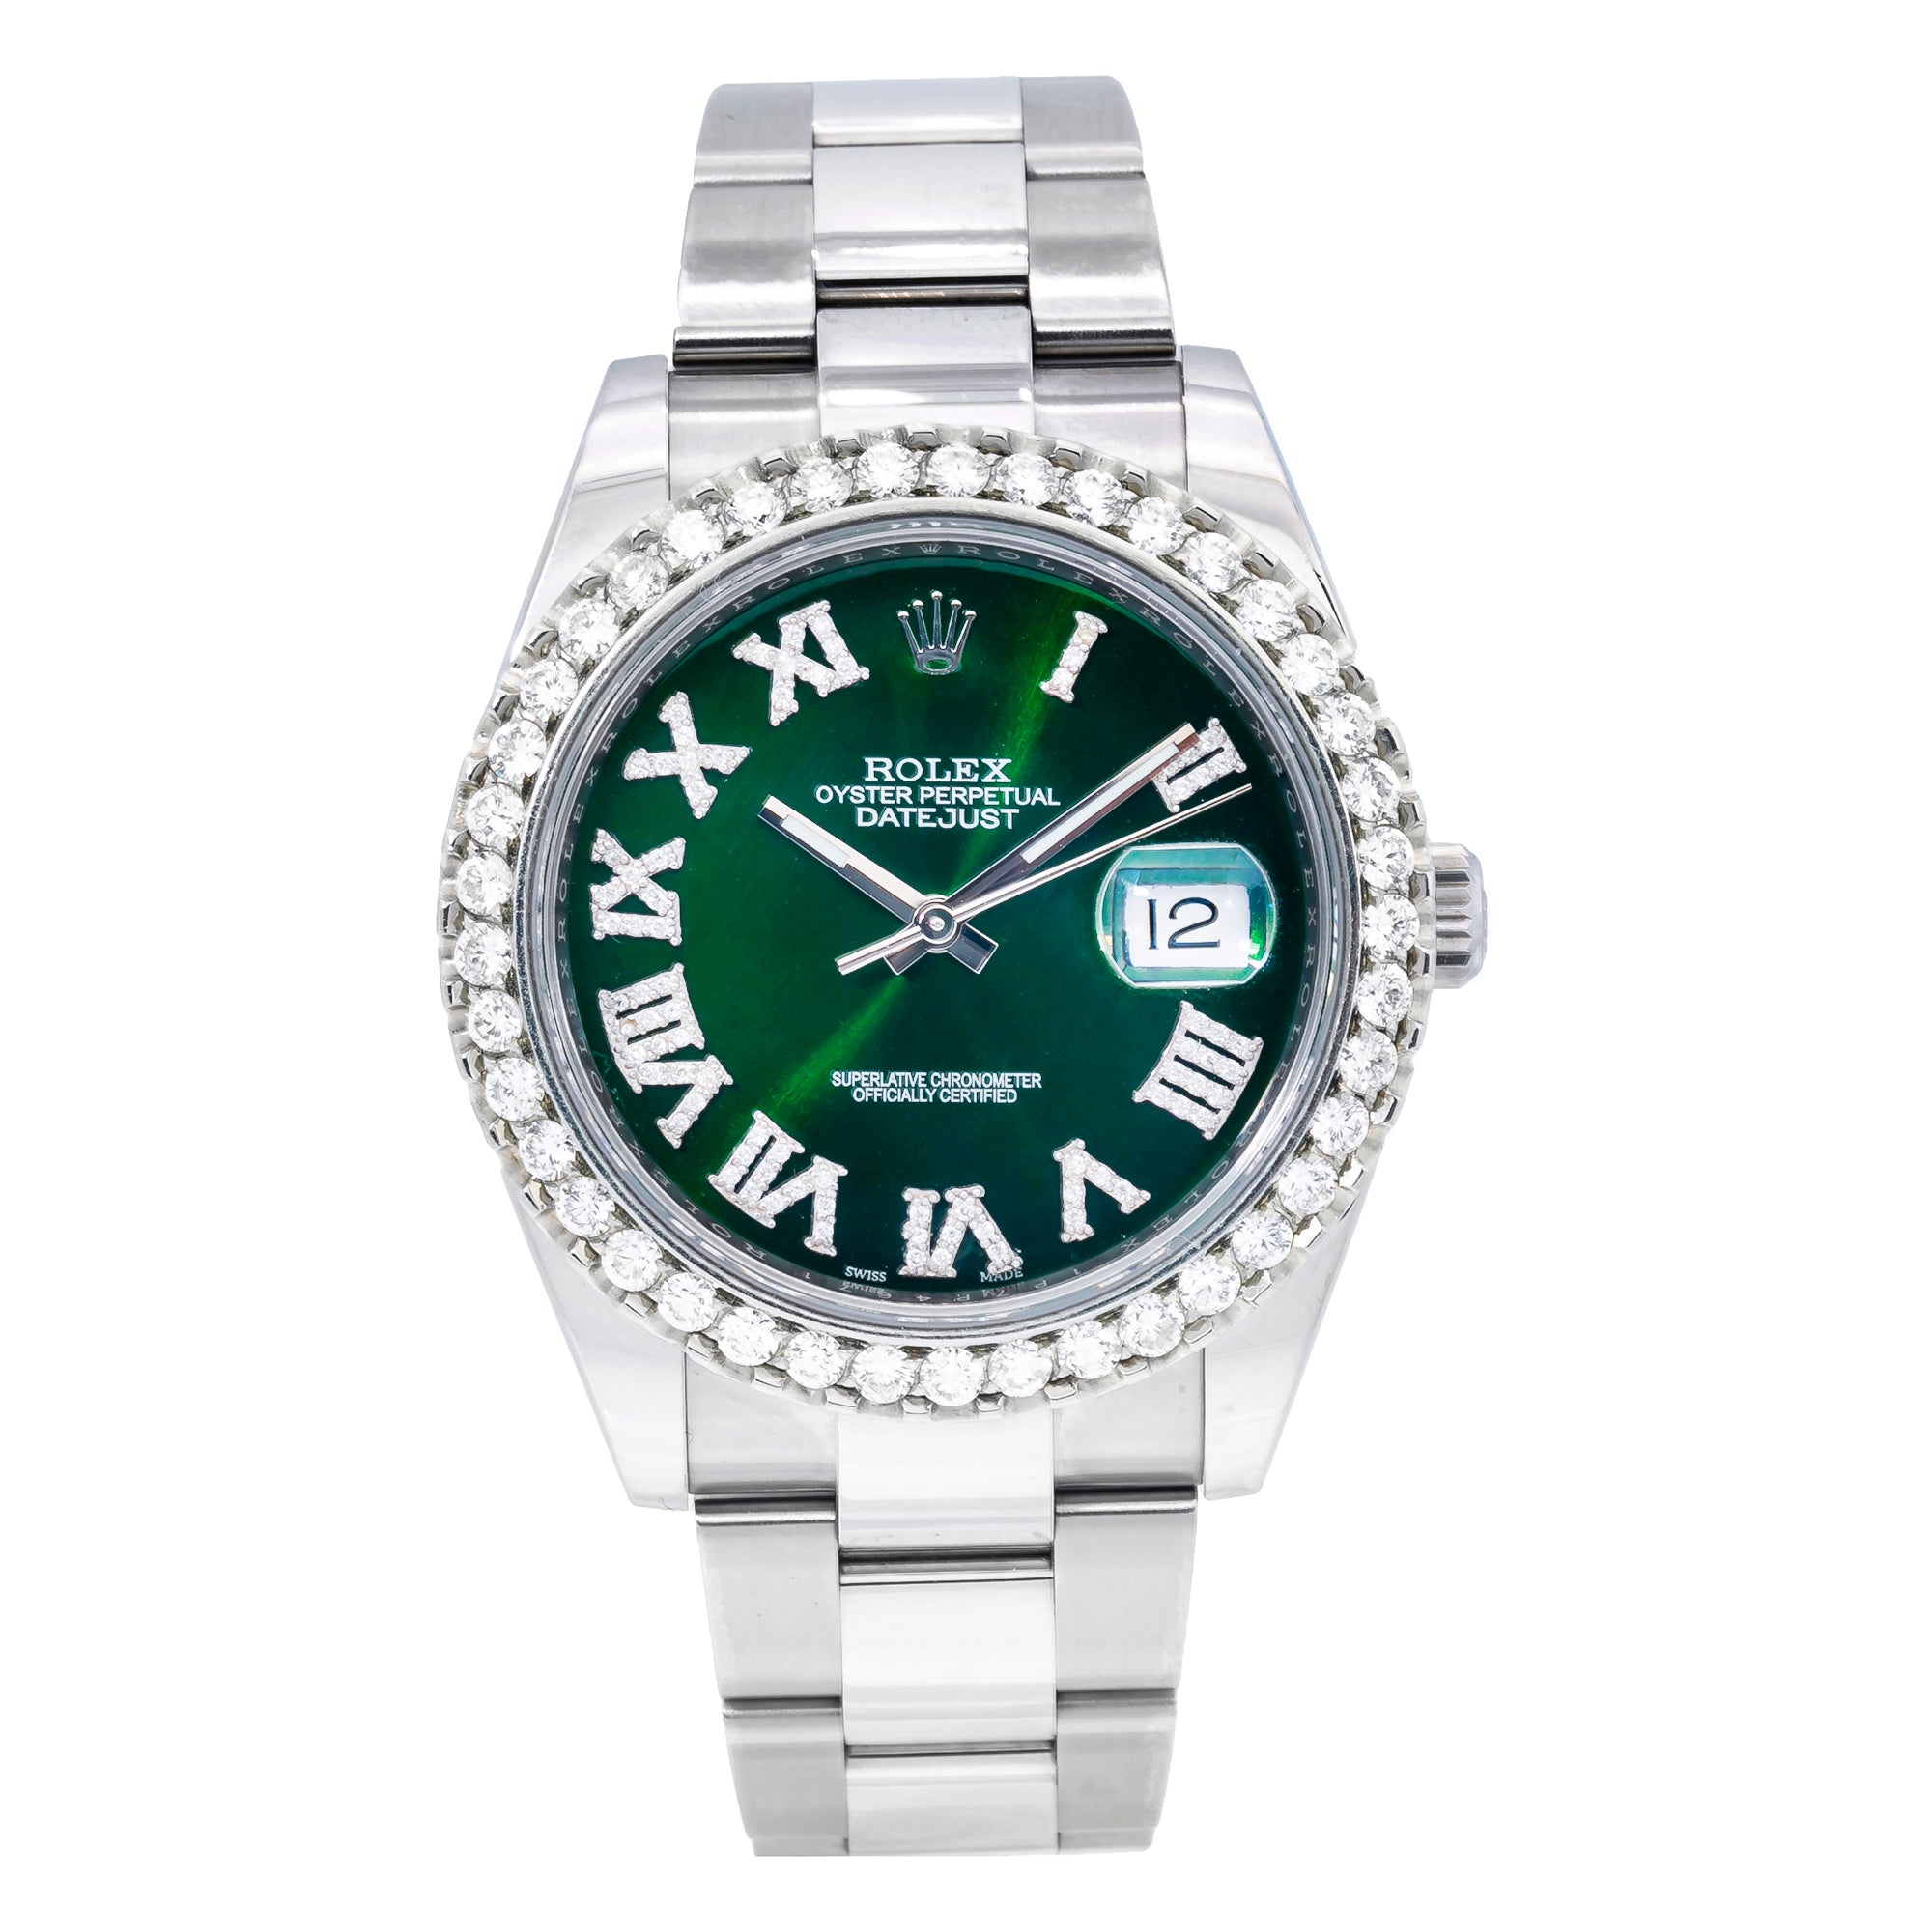 Rolex Datejust 126300 41MM Green Diamond Dial With Stainless Steel Oyster Bracelet